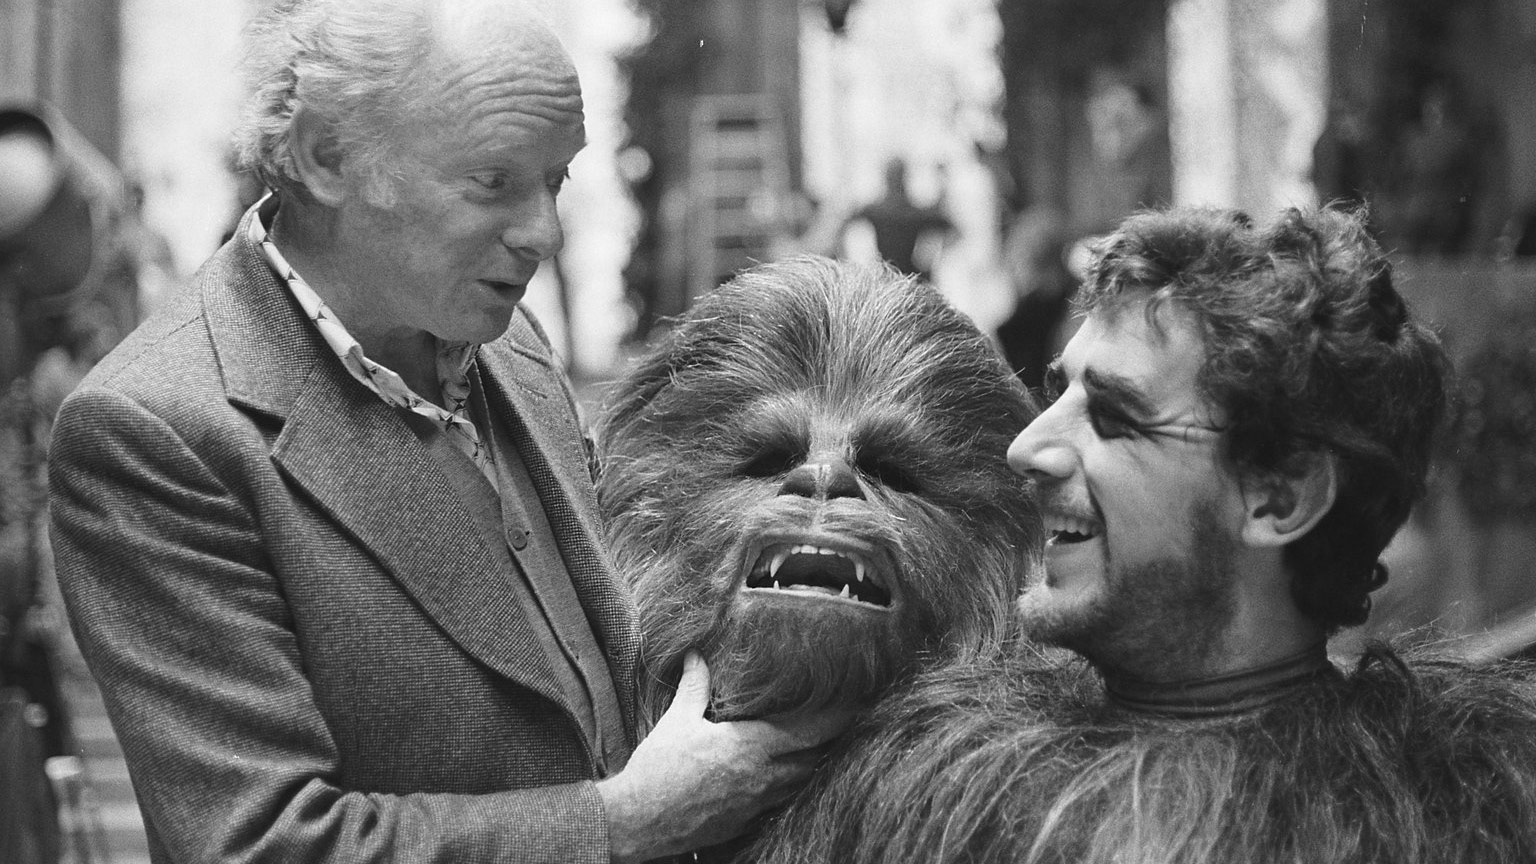 PETER MAYHEW PASSES AWAY  LUCASFILM REMEMBERS THE ACTOR WHO BROUGHT CHEWBACCA TO LIFE.  Chewbacca. The name alone conjures feelings of honesty, loyalty, and strength. The best friend you could ever have or want.